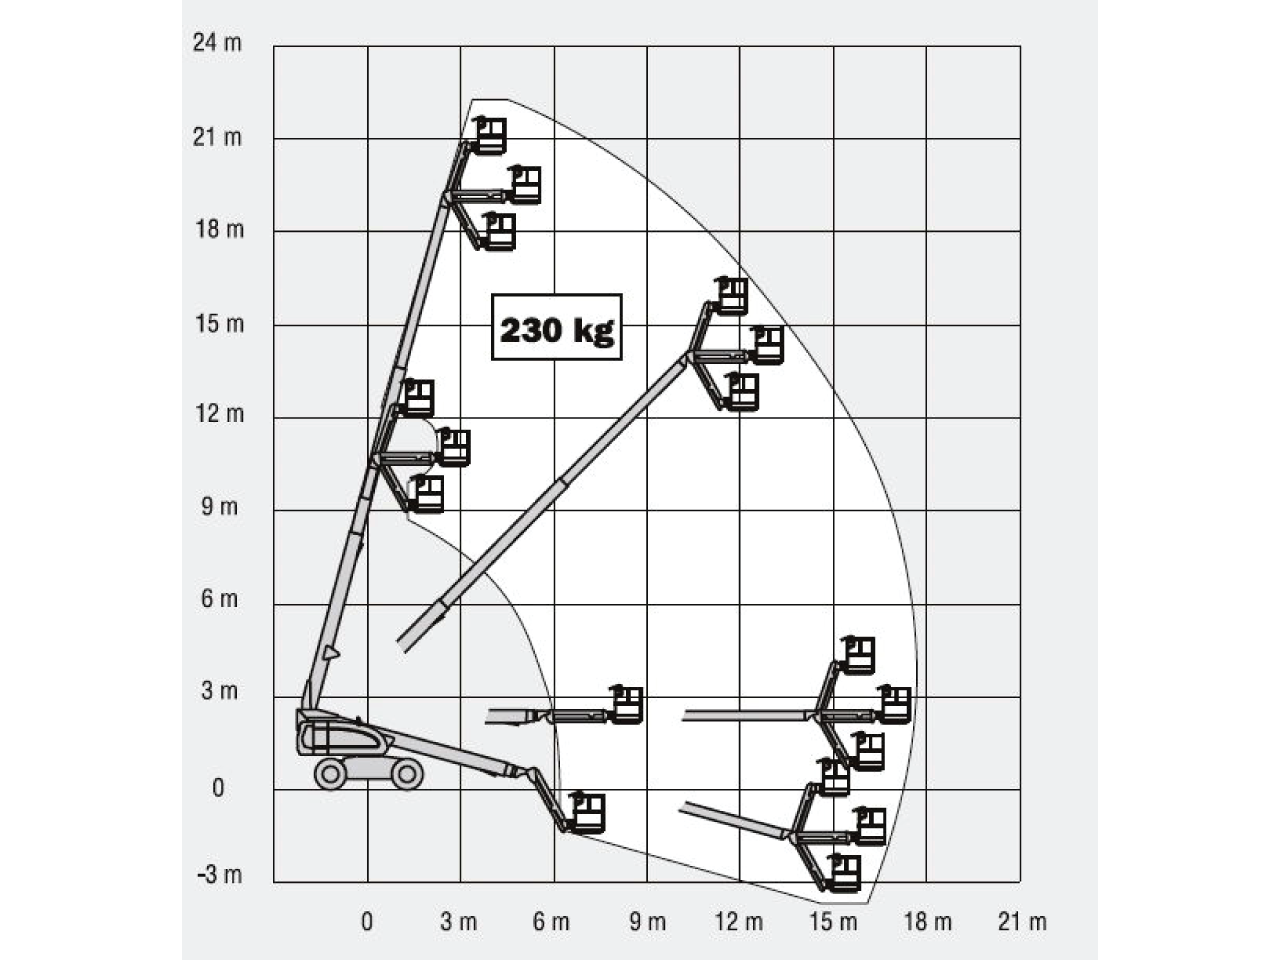 JLG660SJ-Cherry-Picker-Diagram